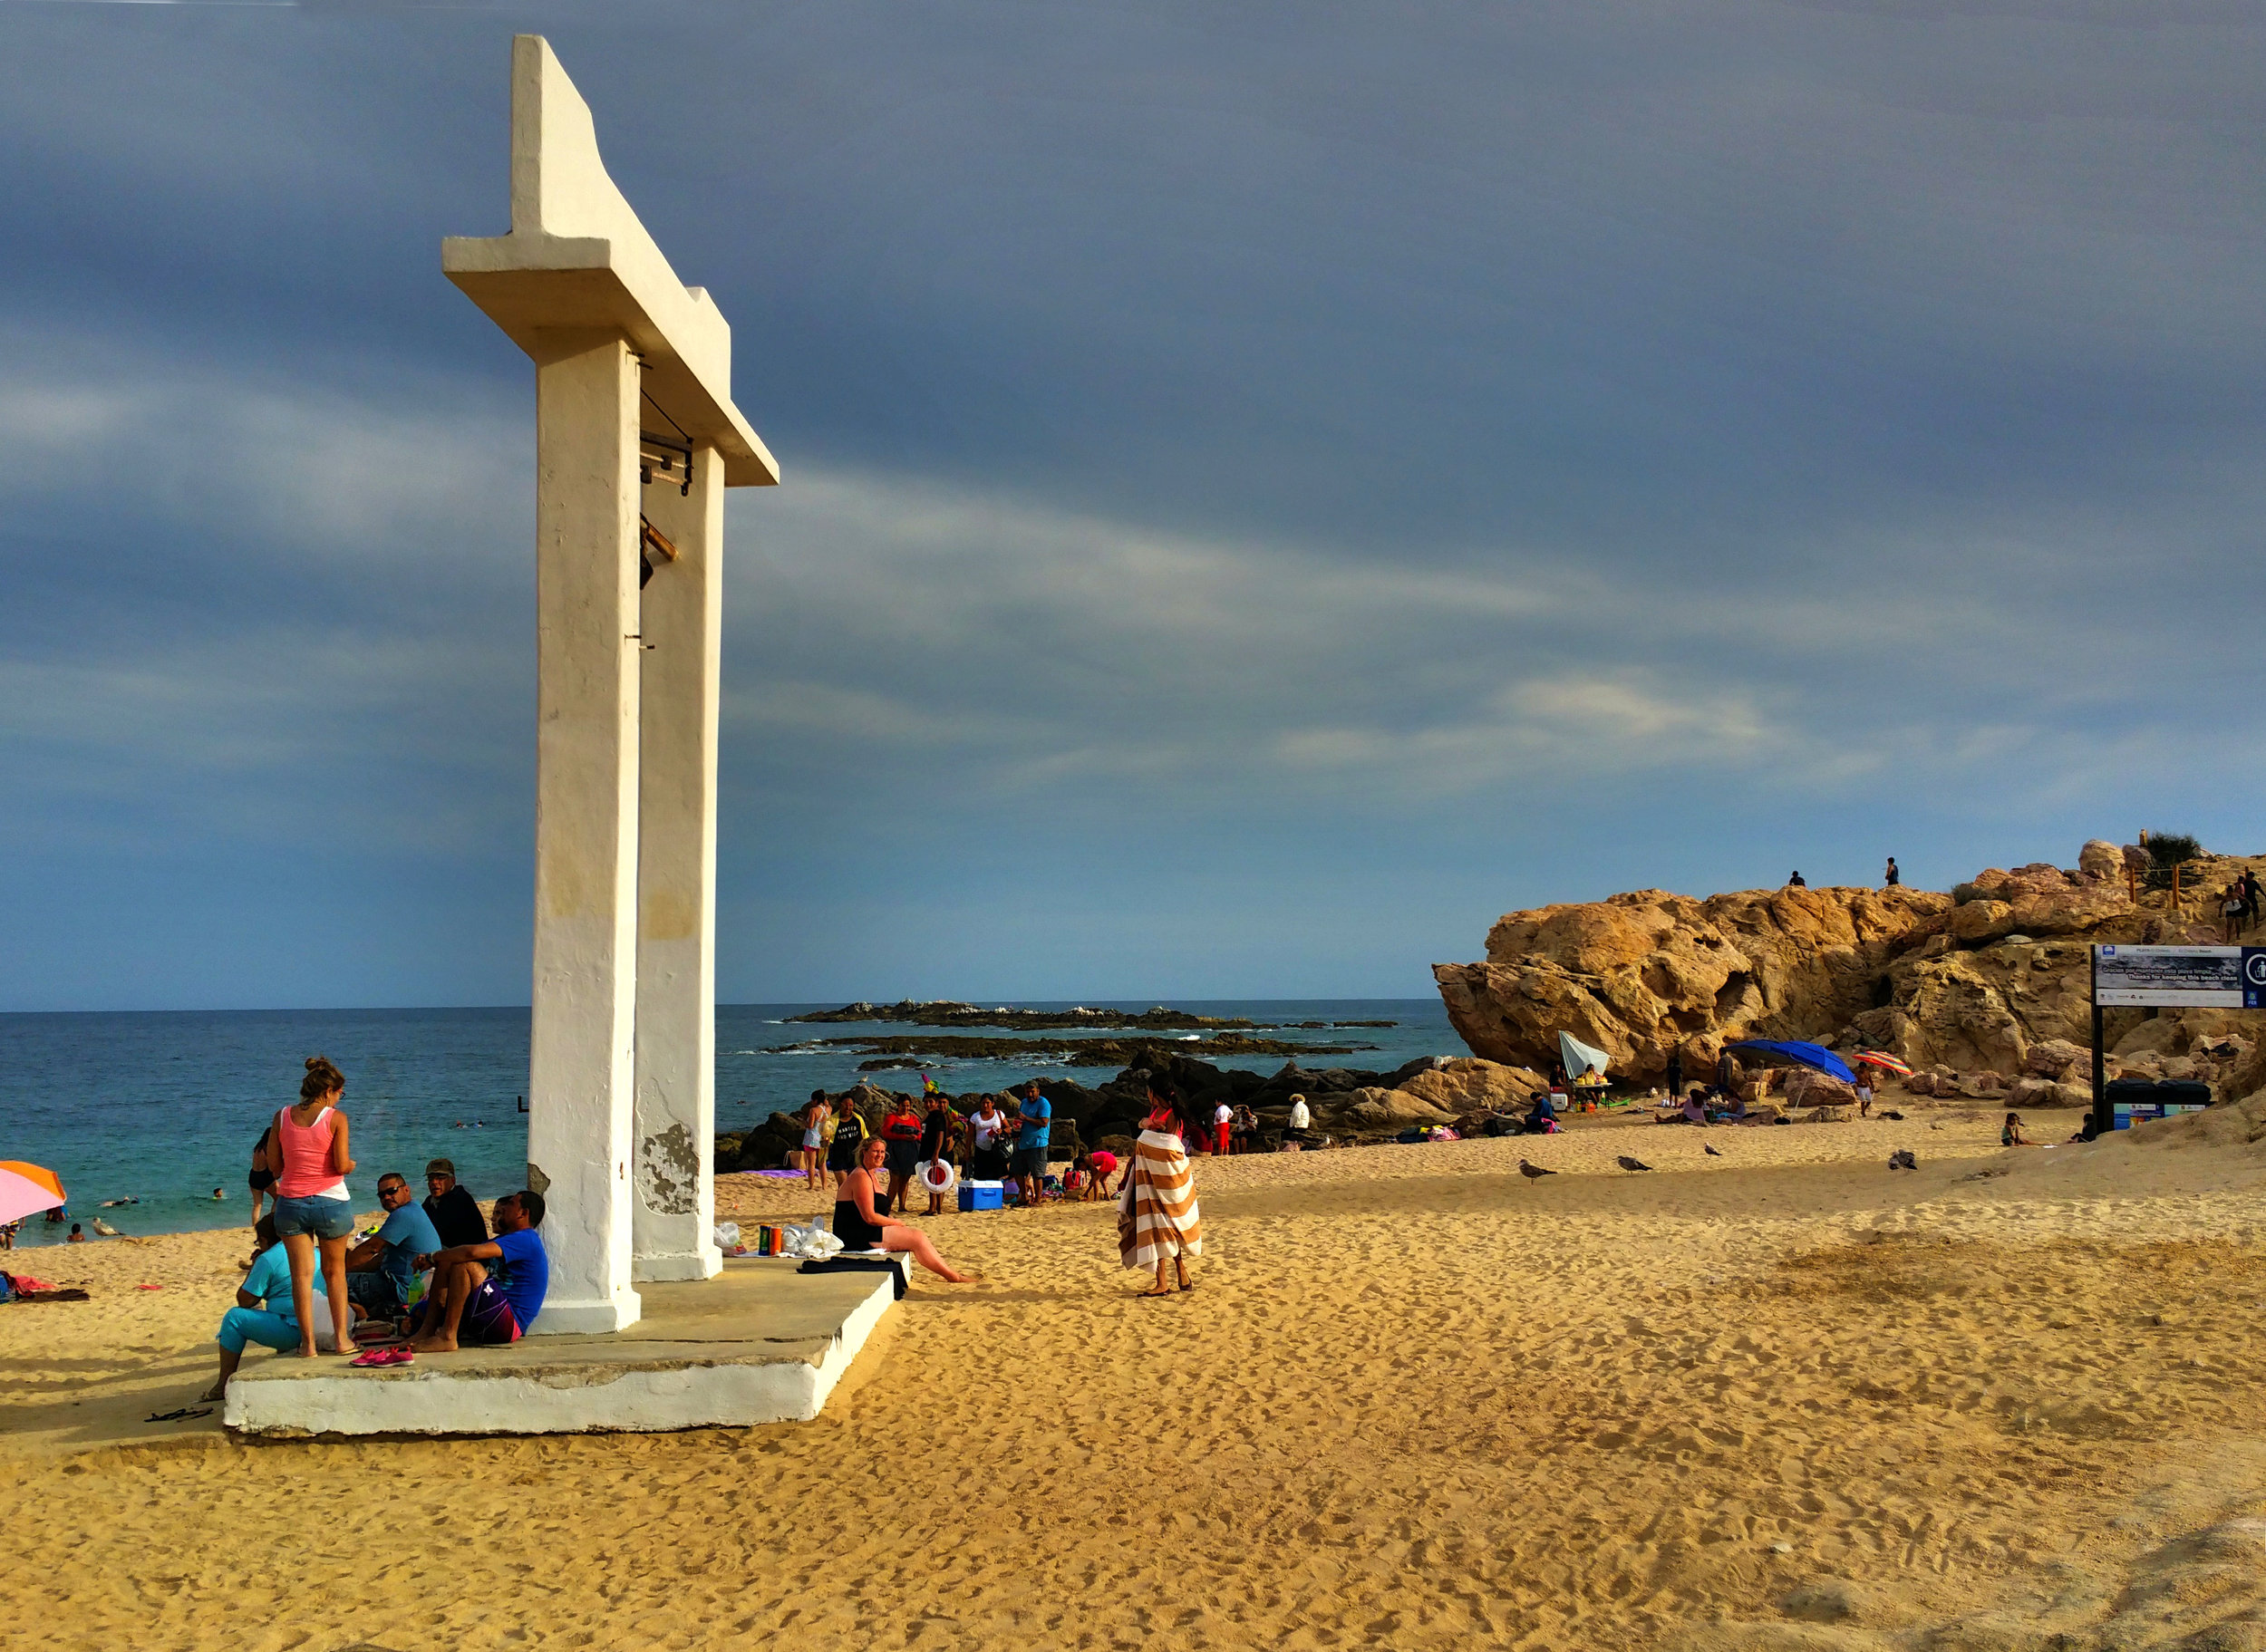 Los Cabos' Chileno Beach is a snorkler's paradise and the golden sand beaches are the perfect place for a picnic, familly get-together (or wedding, which happens here often). Visitor amenities are state-of-the-art, and include showers, changing rooms, and an accessible walkway down to the beach.